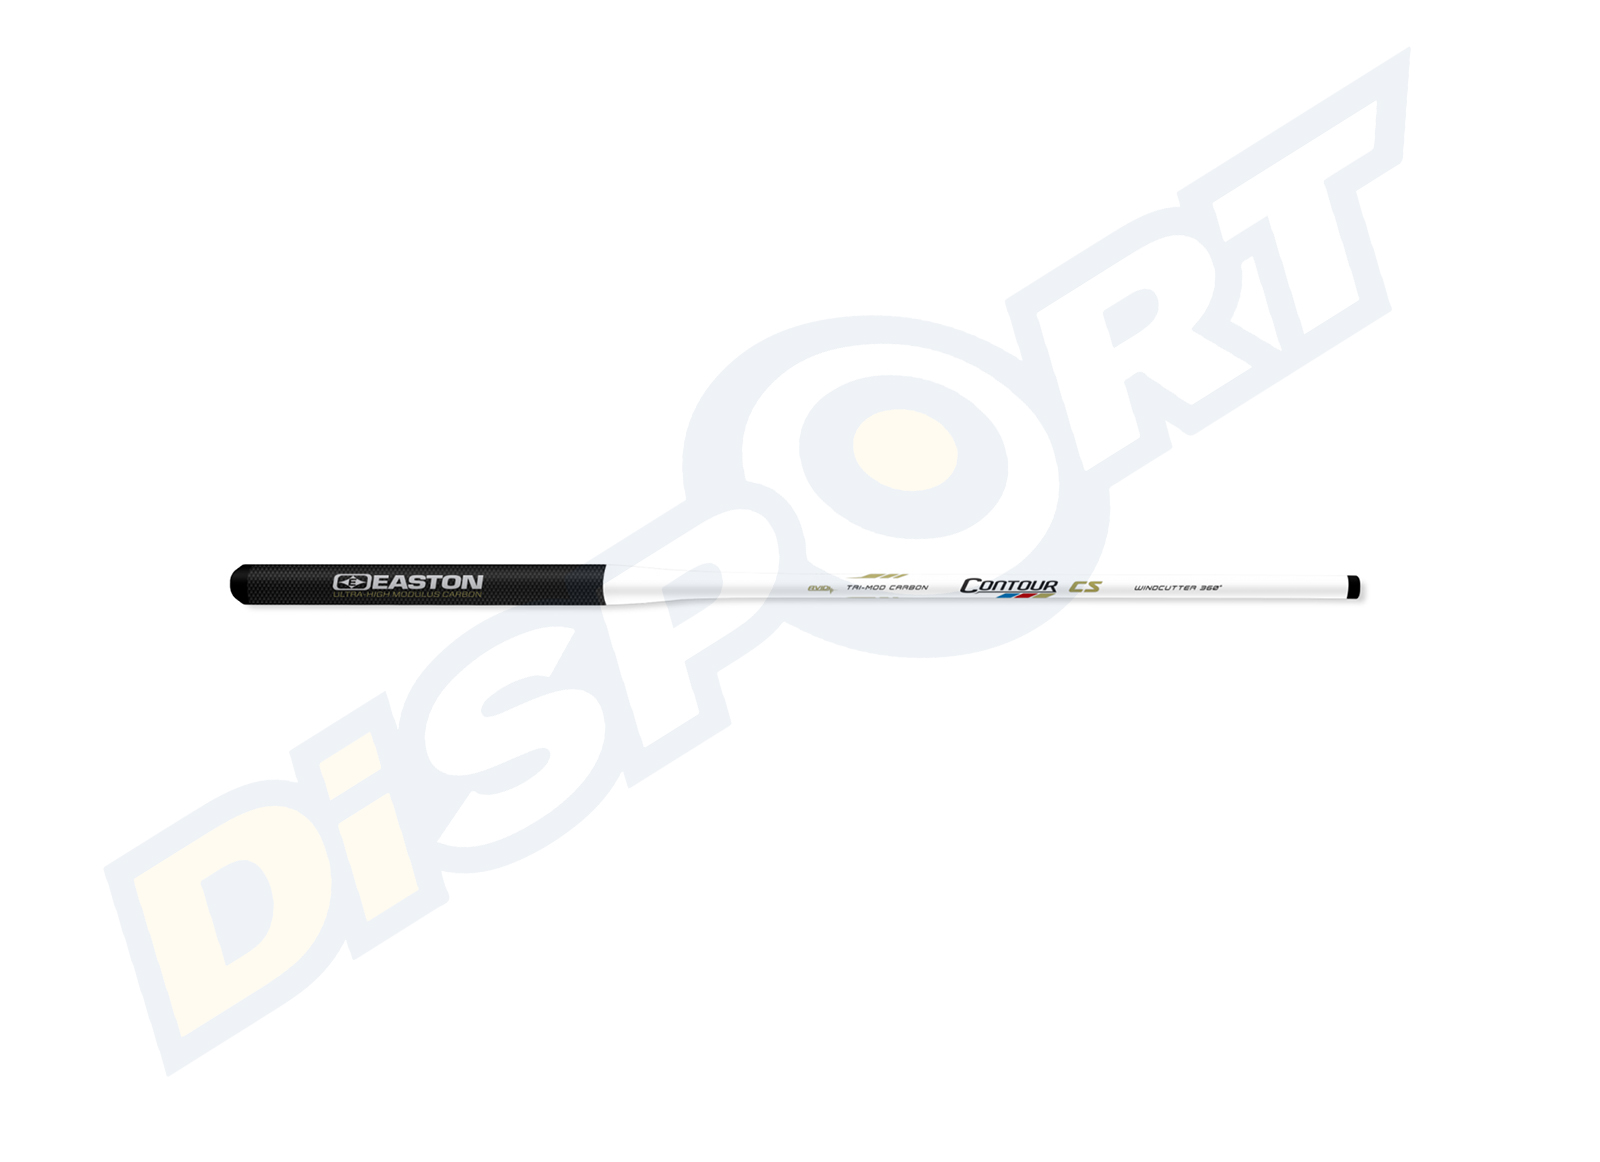 EASTON STABILIZZATORE LATERALE CONTOUR CS